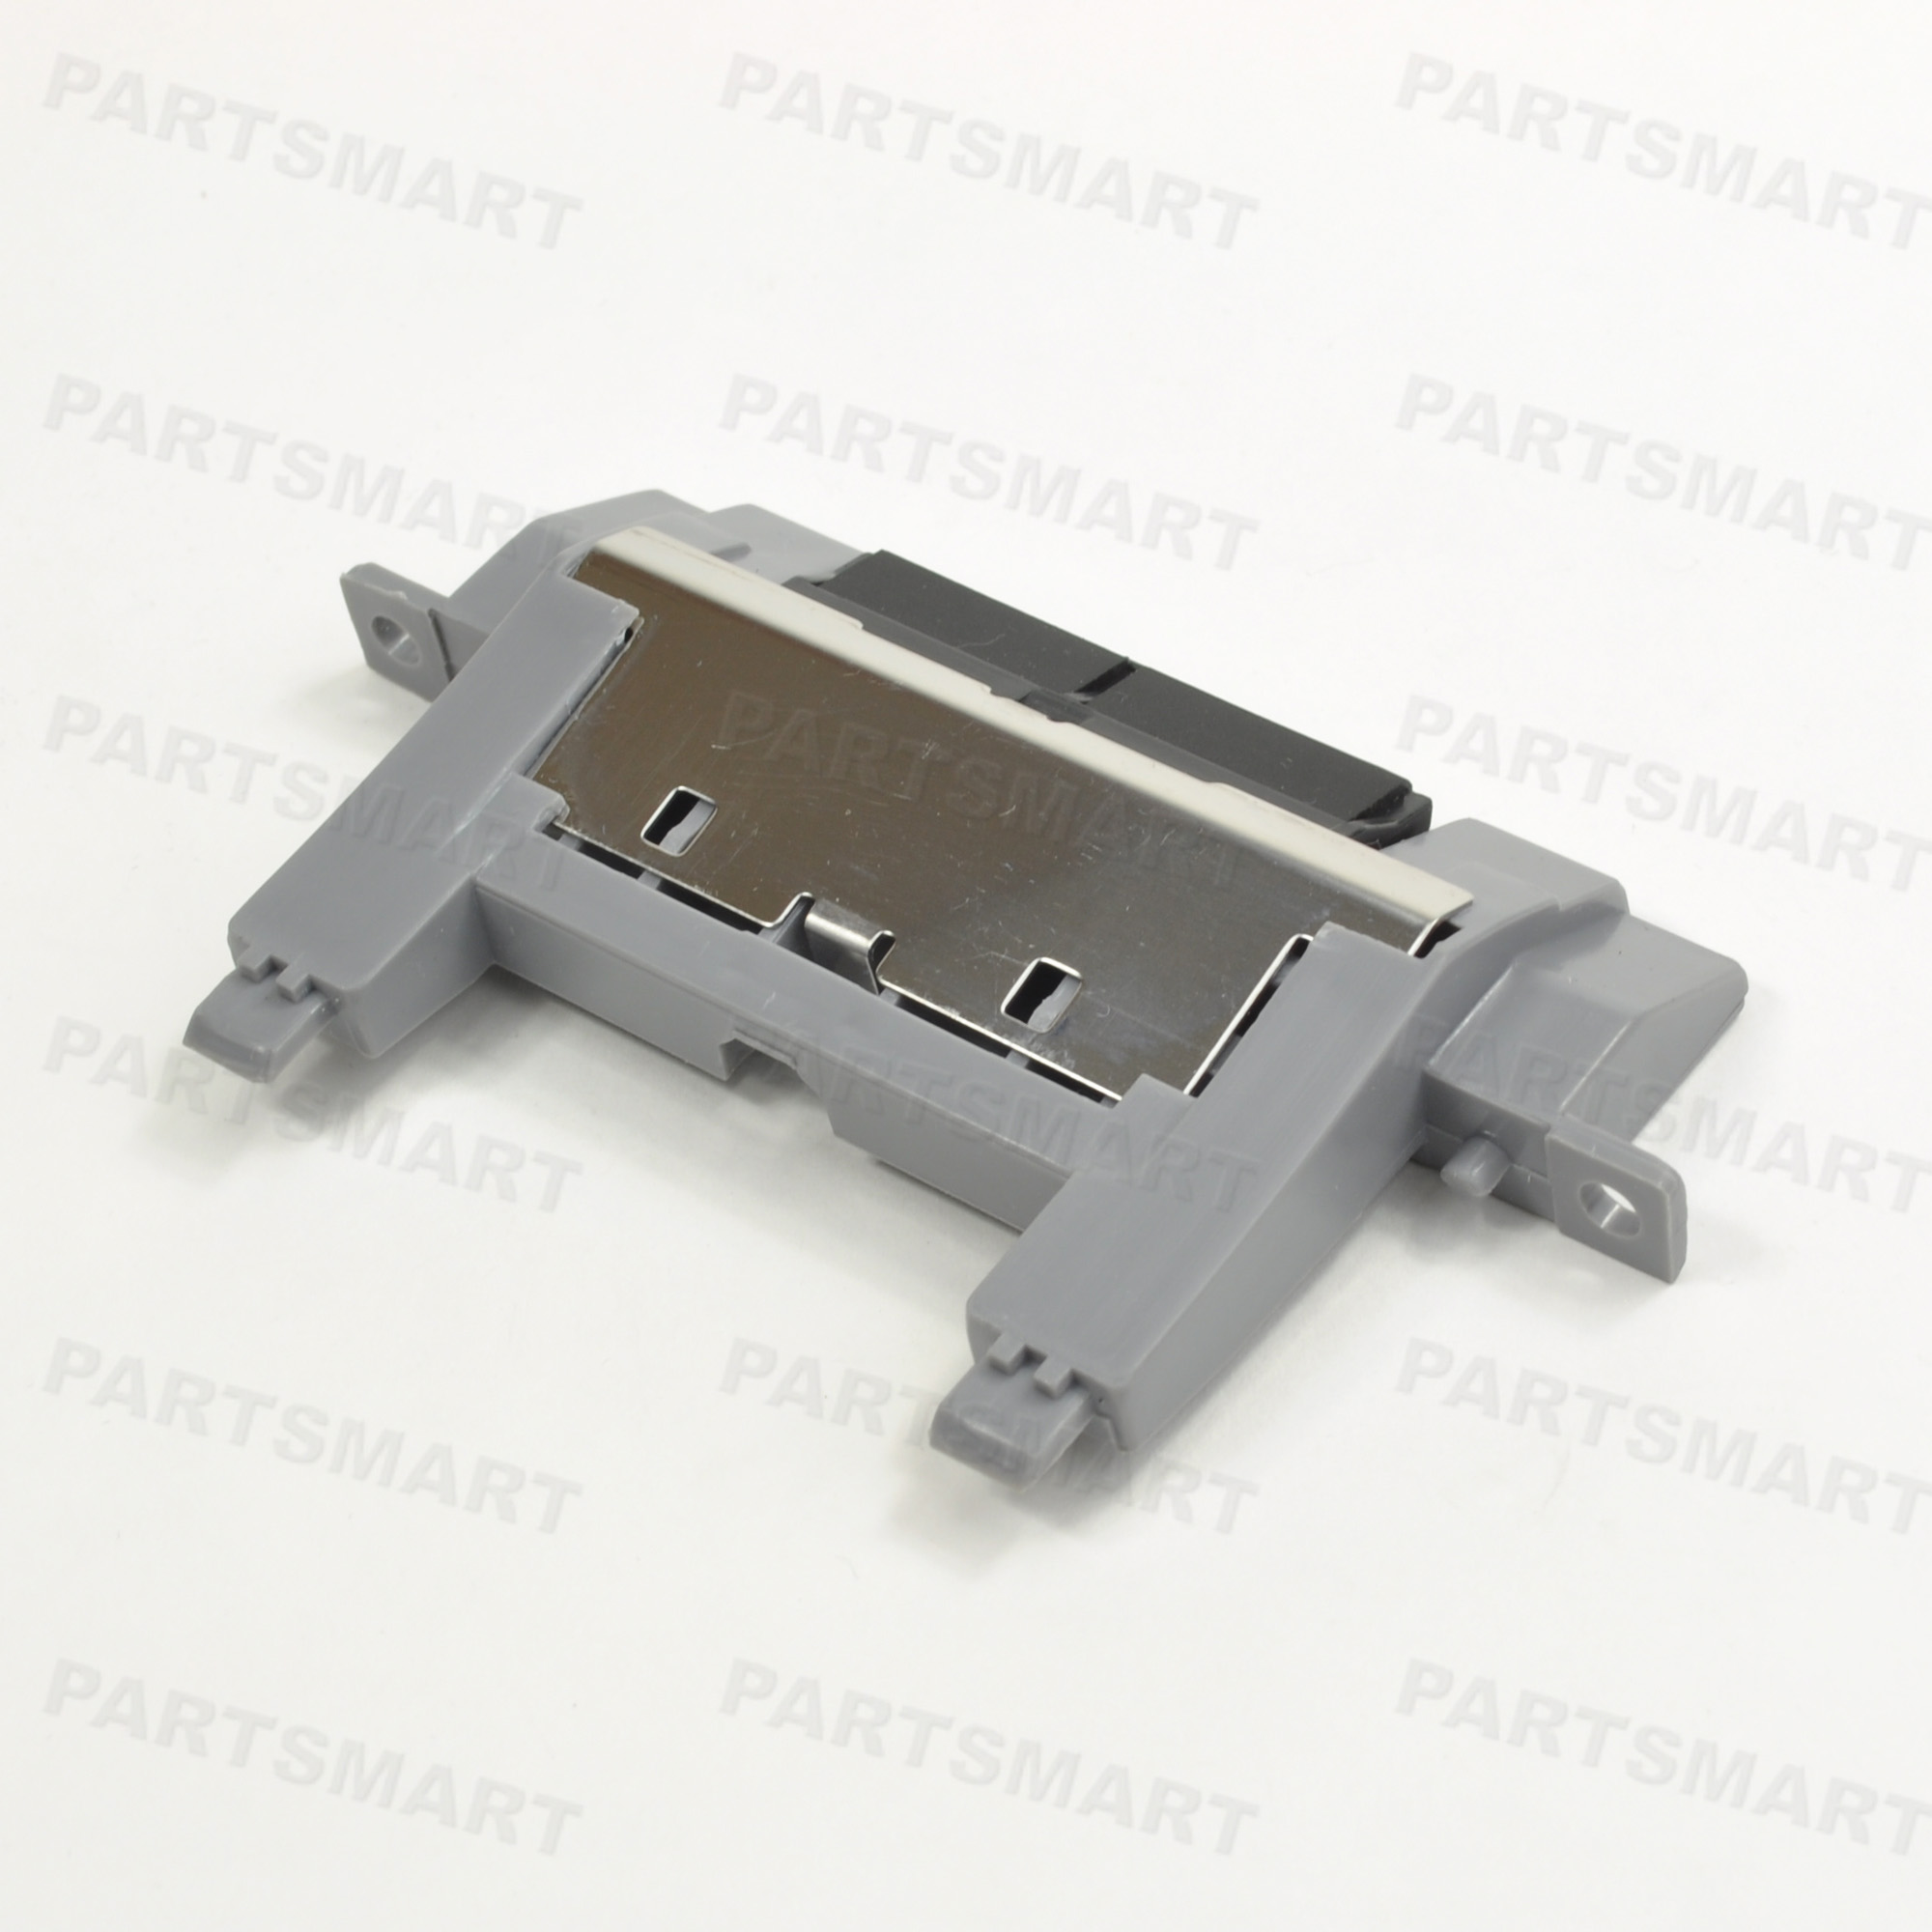 RM1-6303-000 Sep Pad Holder Assy,Tray 2 for HP LaserJet P3015